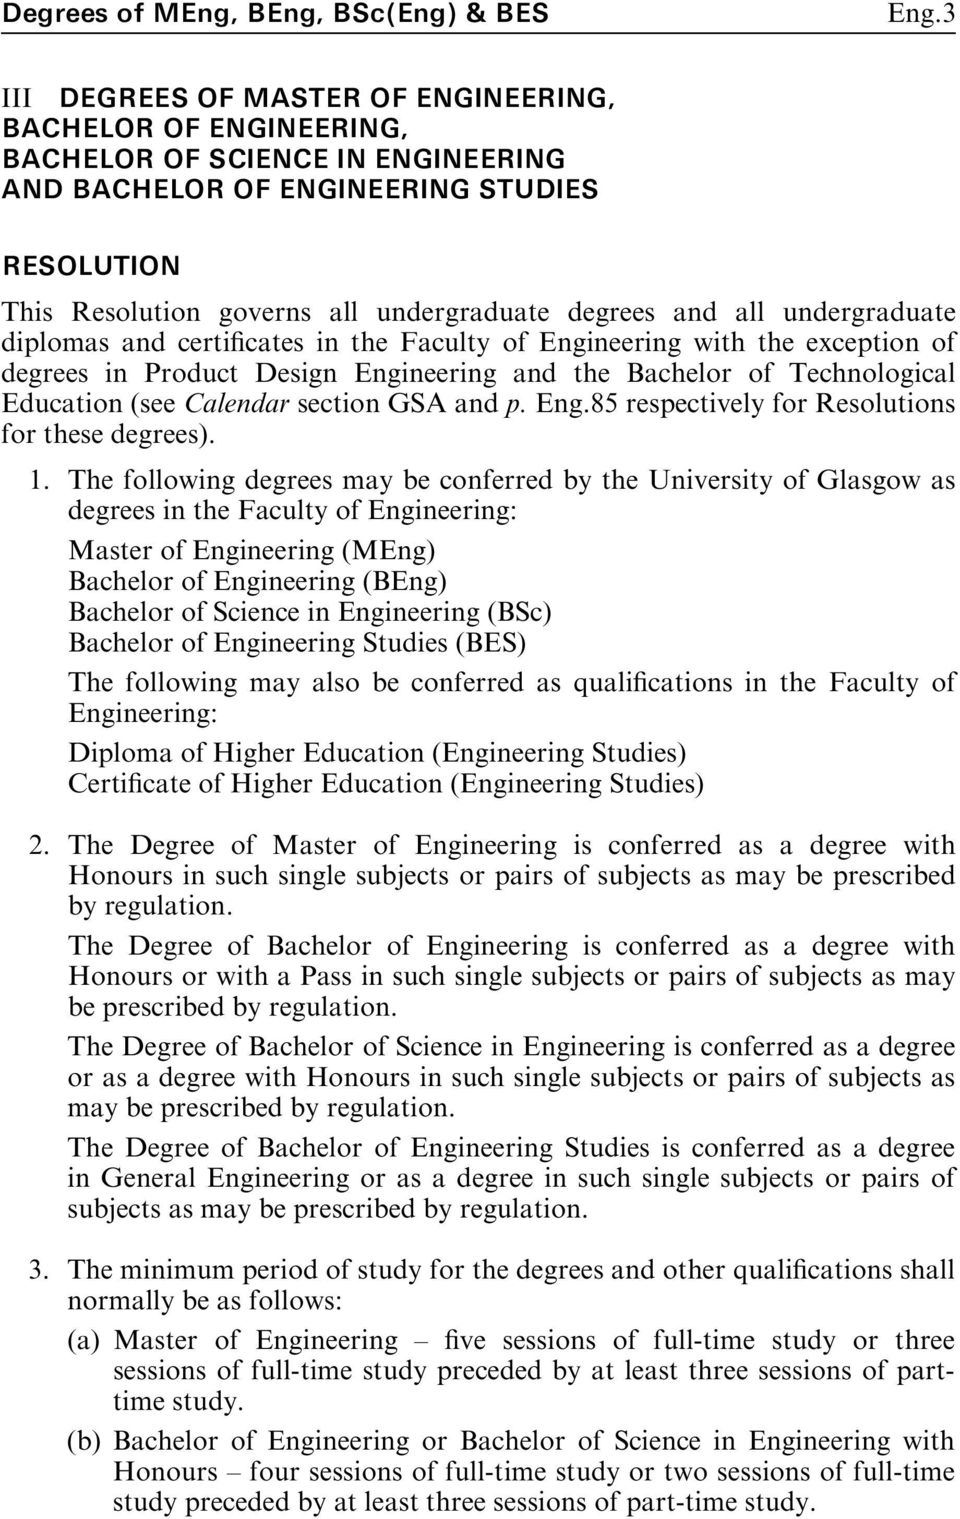 and all undergraduate diplomas and certi cates in the Faculty of Engineering with the exception of degrees in Product Design Engineering and the Bachelor of Technological Education (see Calendar